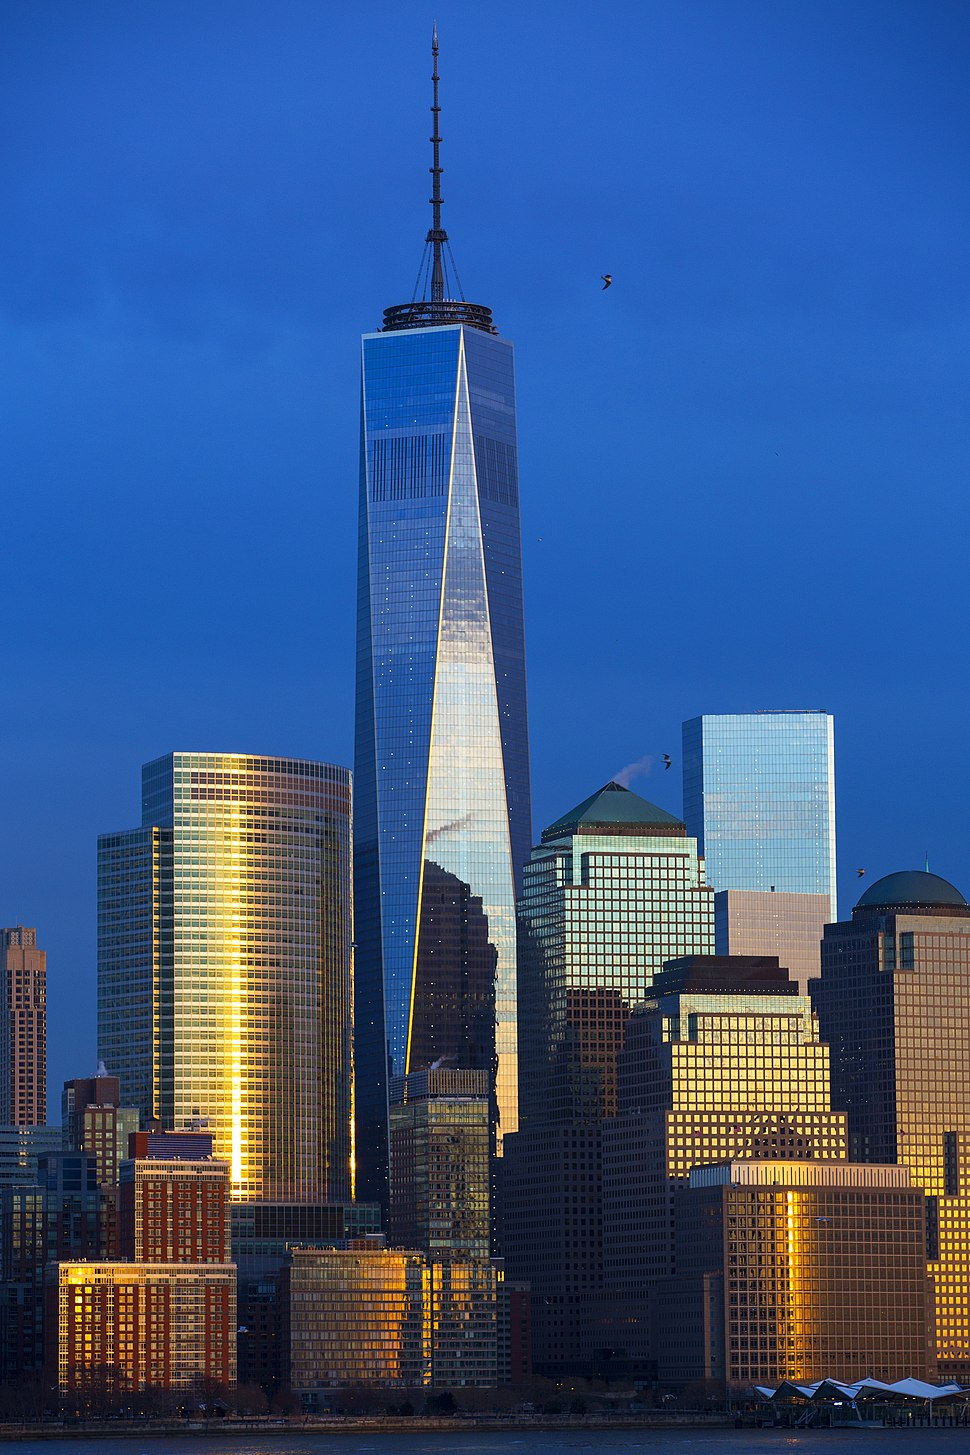 View to One World Trade Center